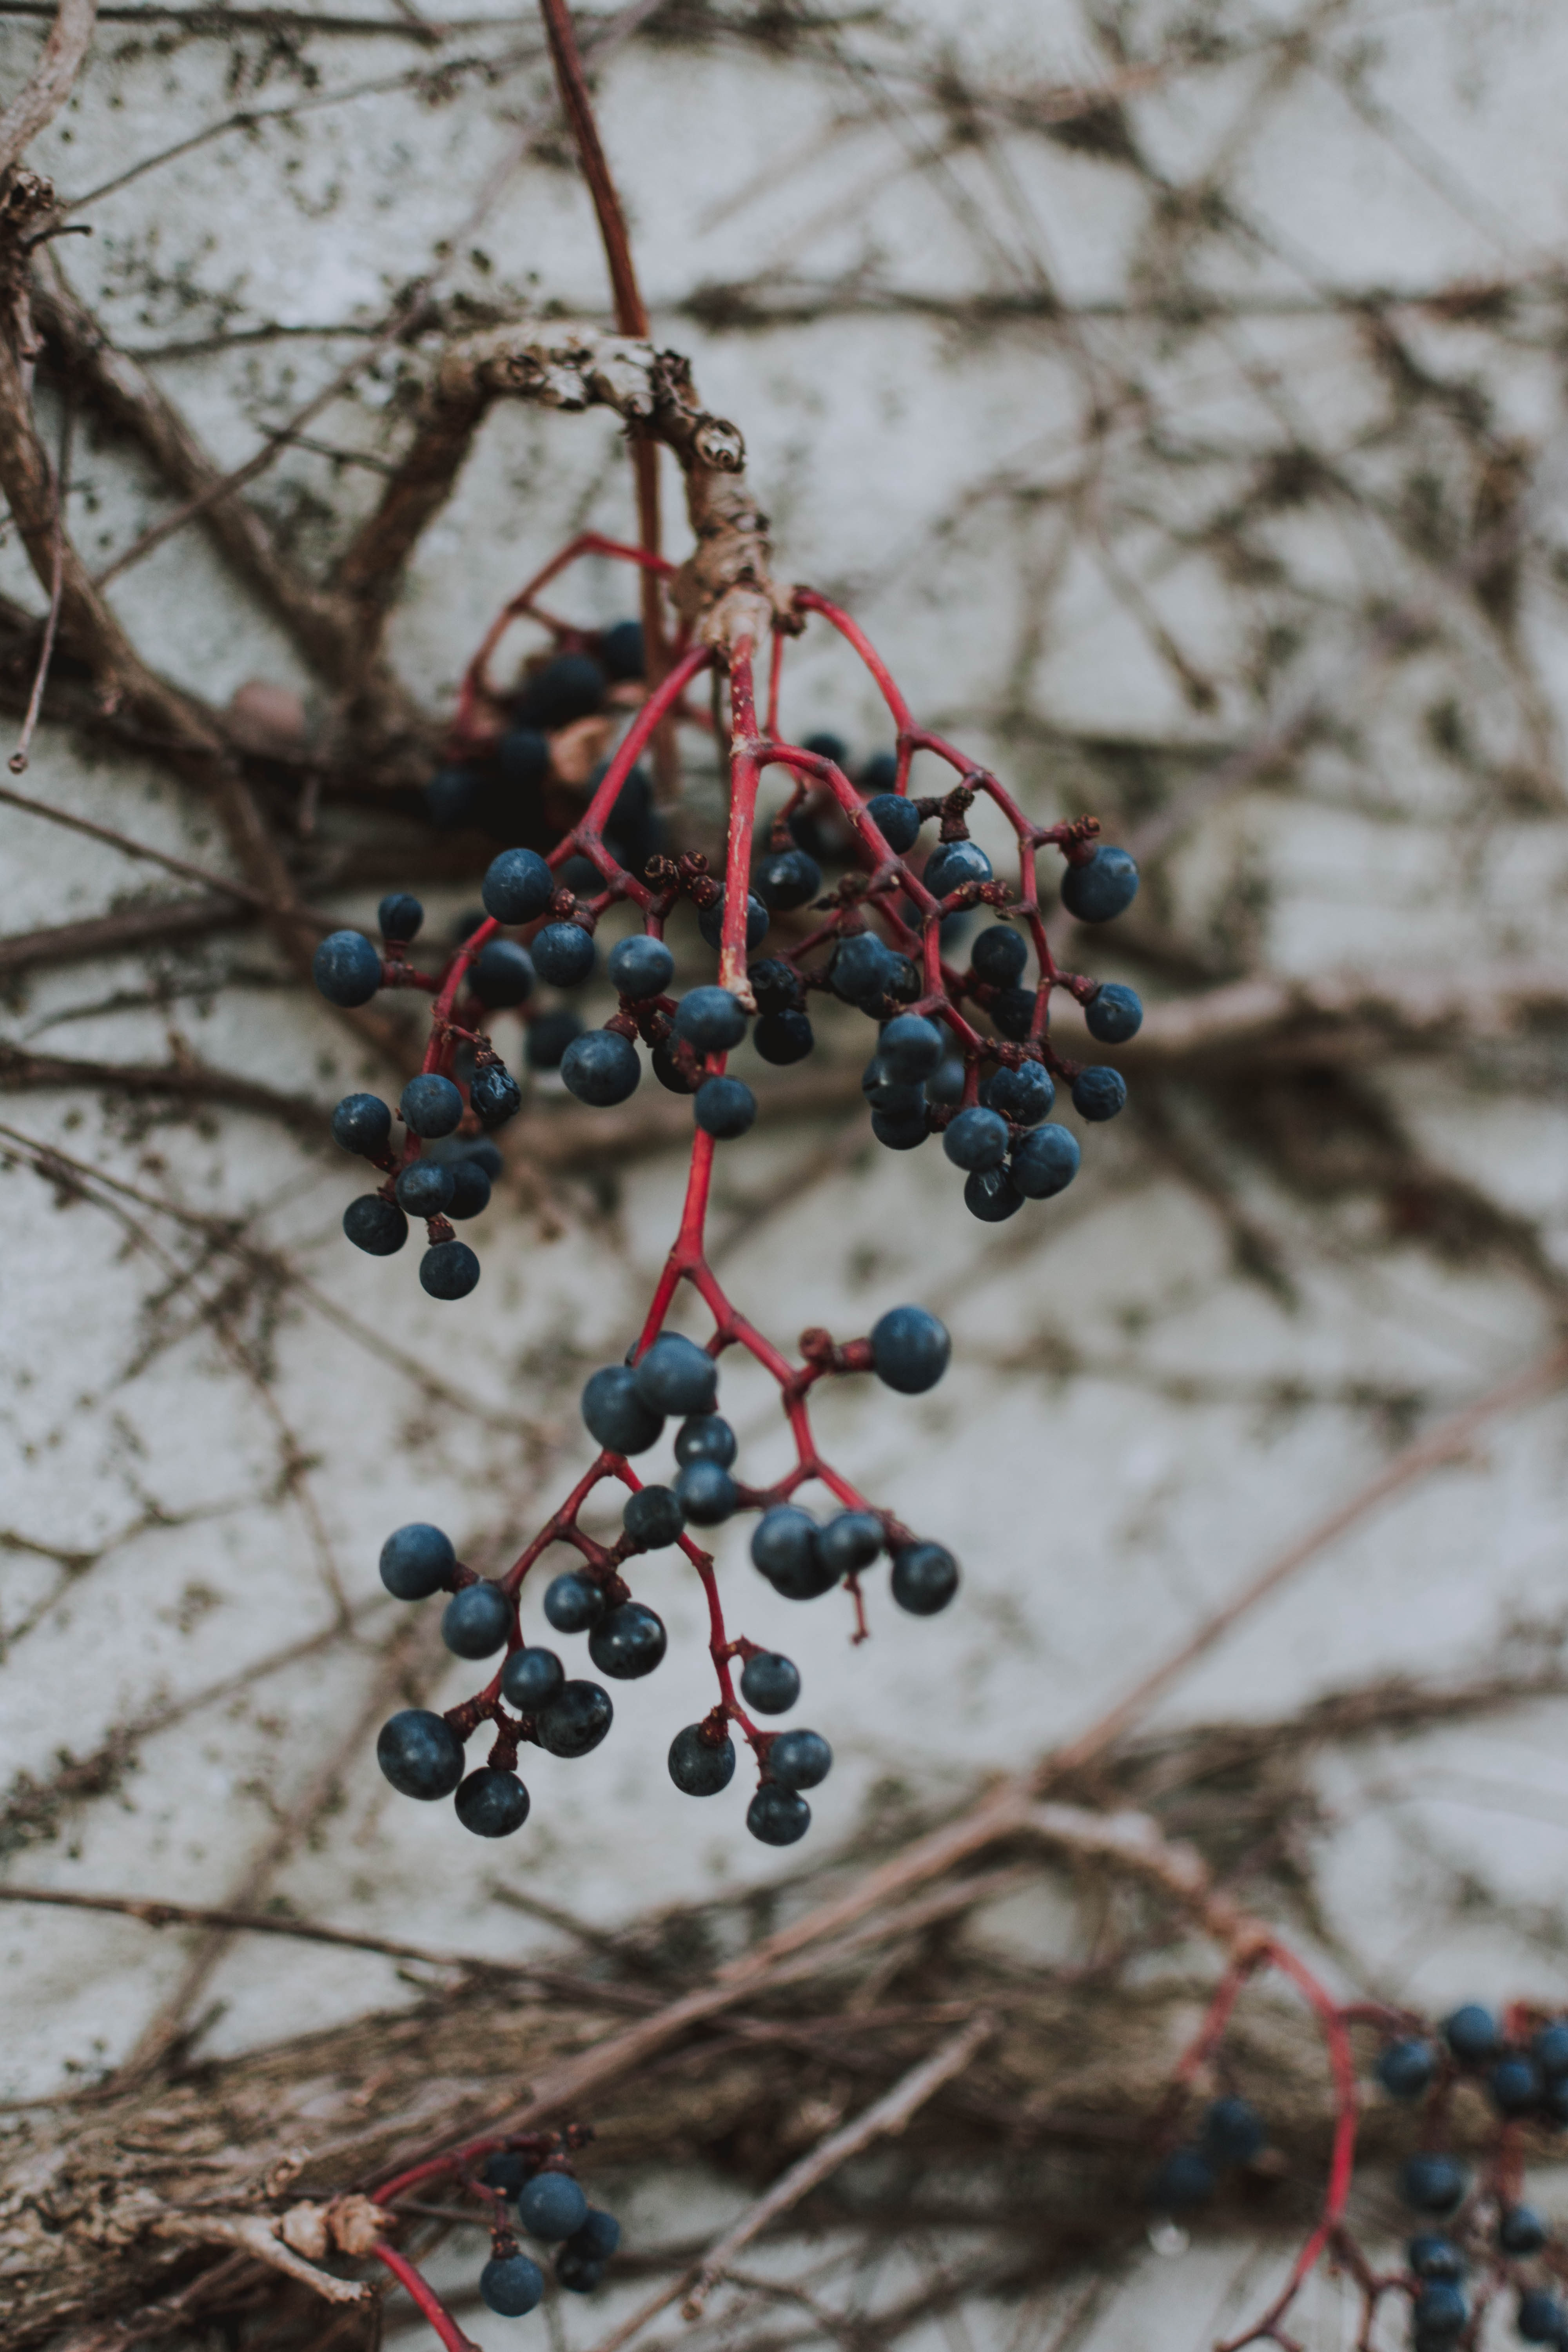 98439 download wallpaper Macro, Bunch, Berries screensavers and pictures for free